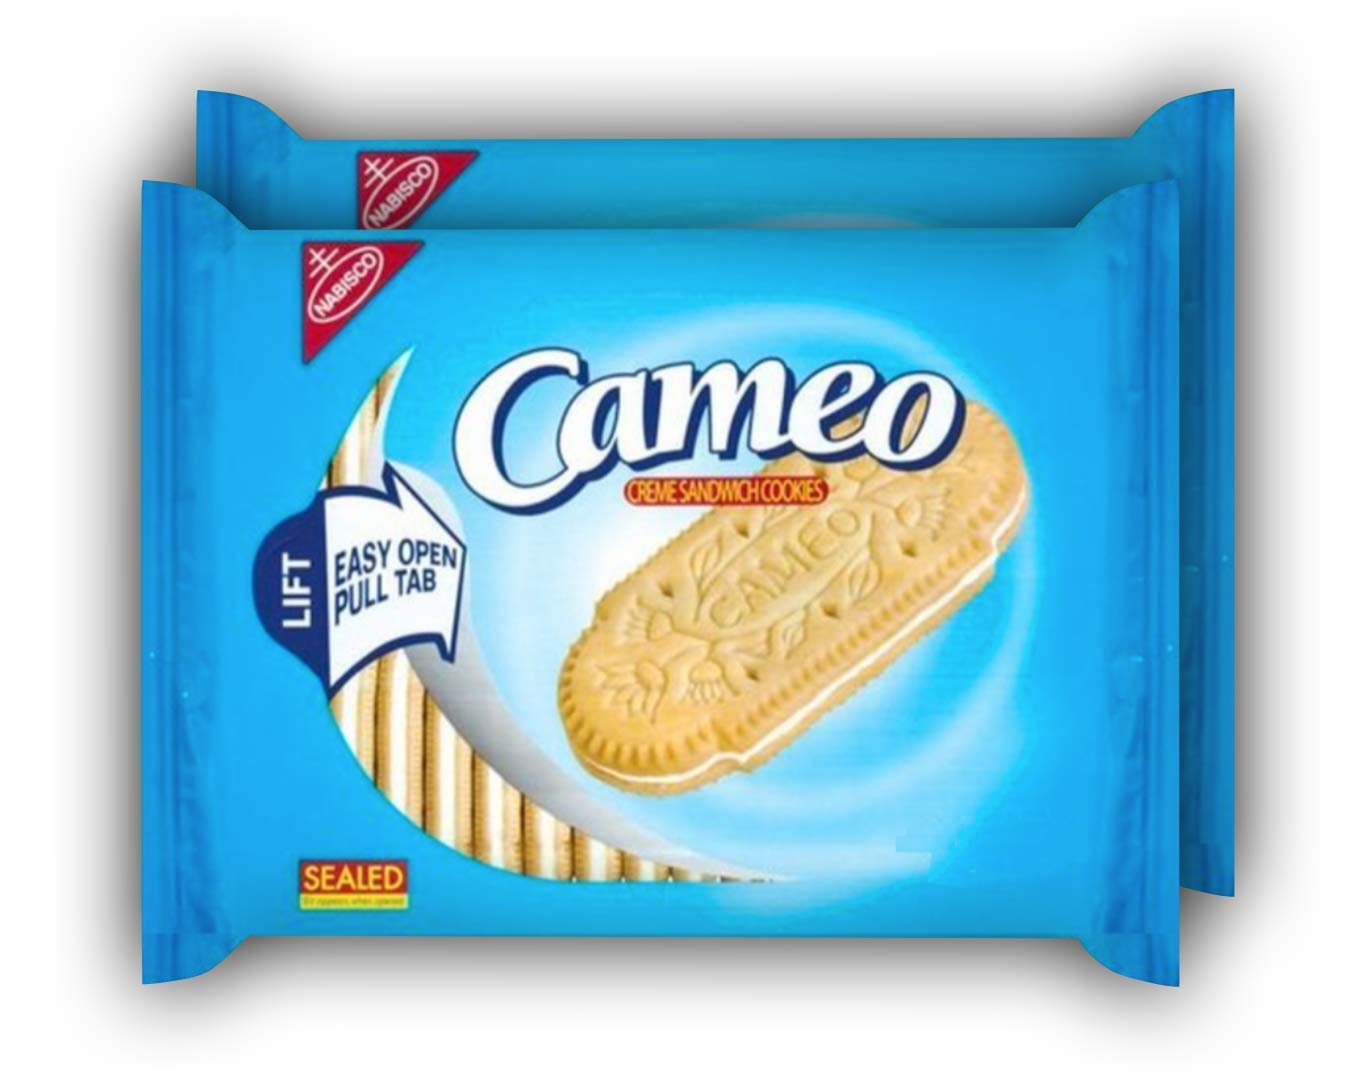 Nabisco Cameo Creme Sandwich Cookies, 14.5 Oz (Pack of 2) by Nabisco